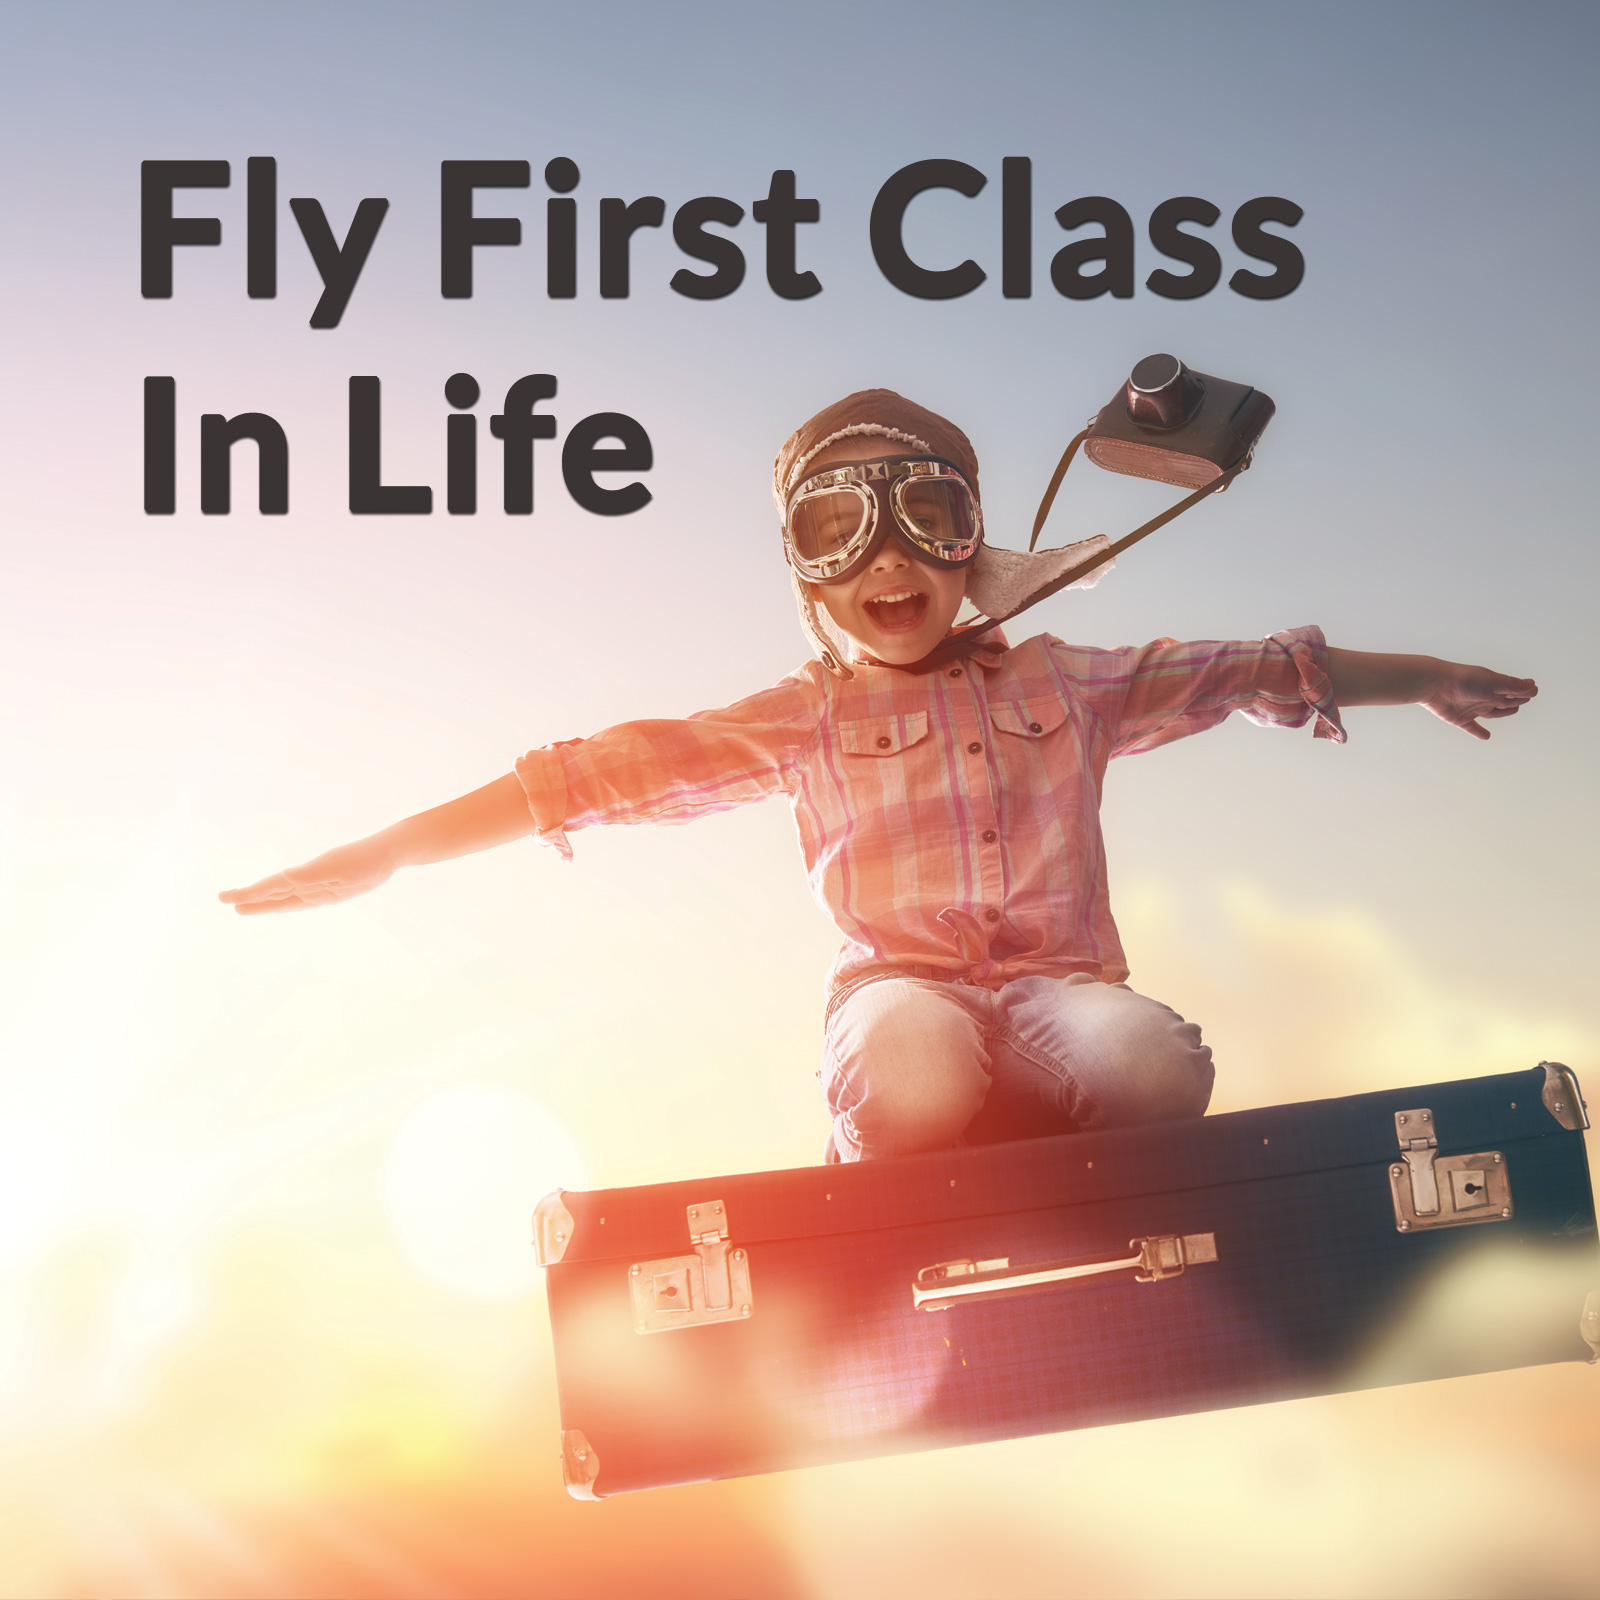 Fly First Class in Life